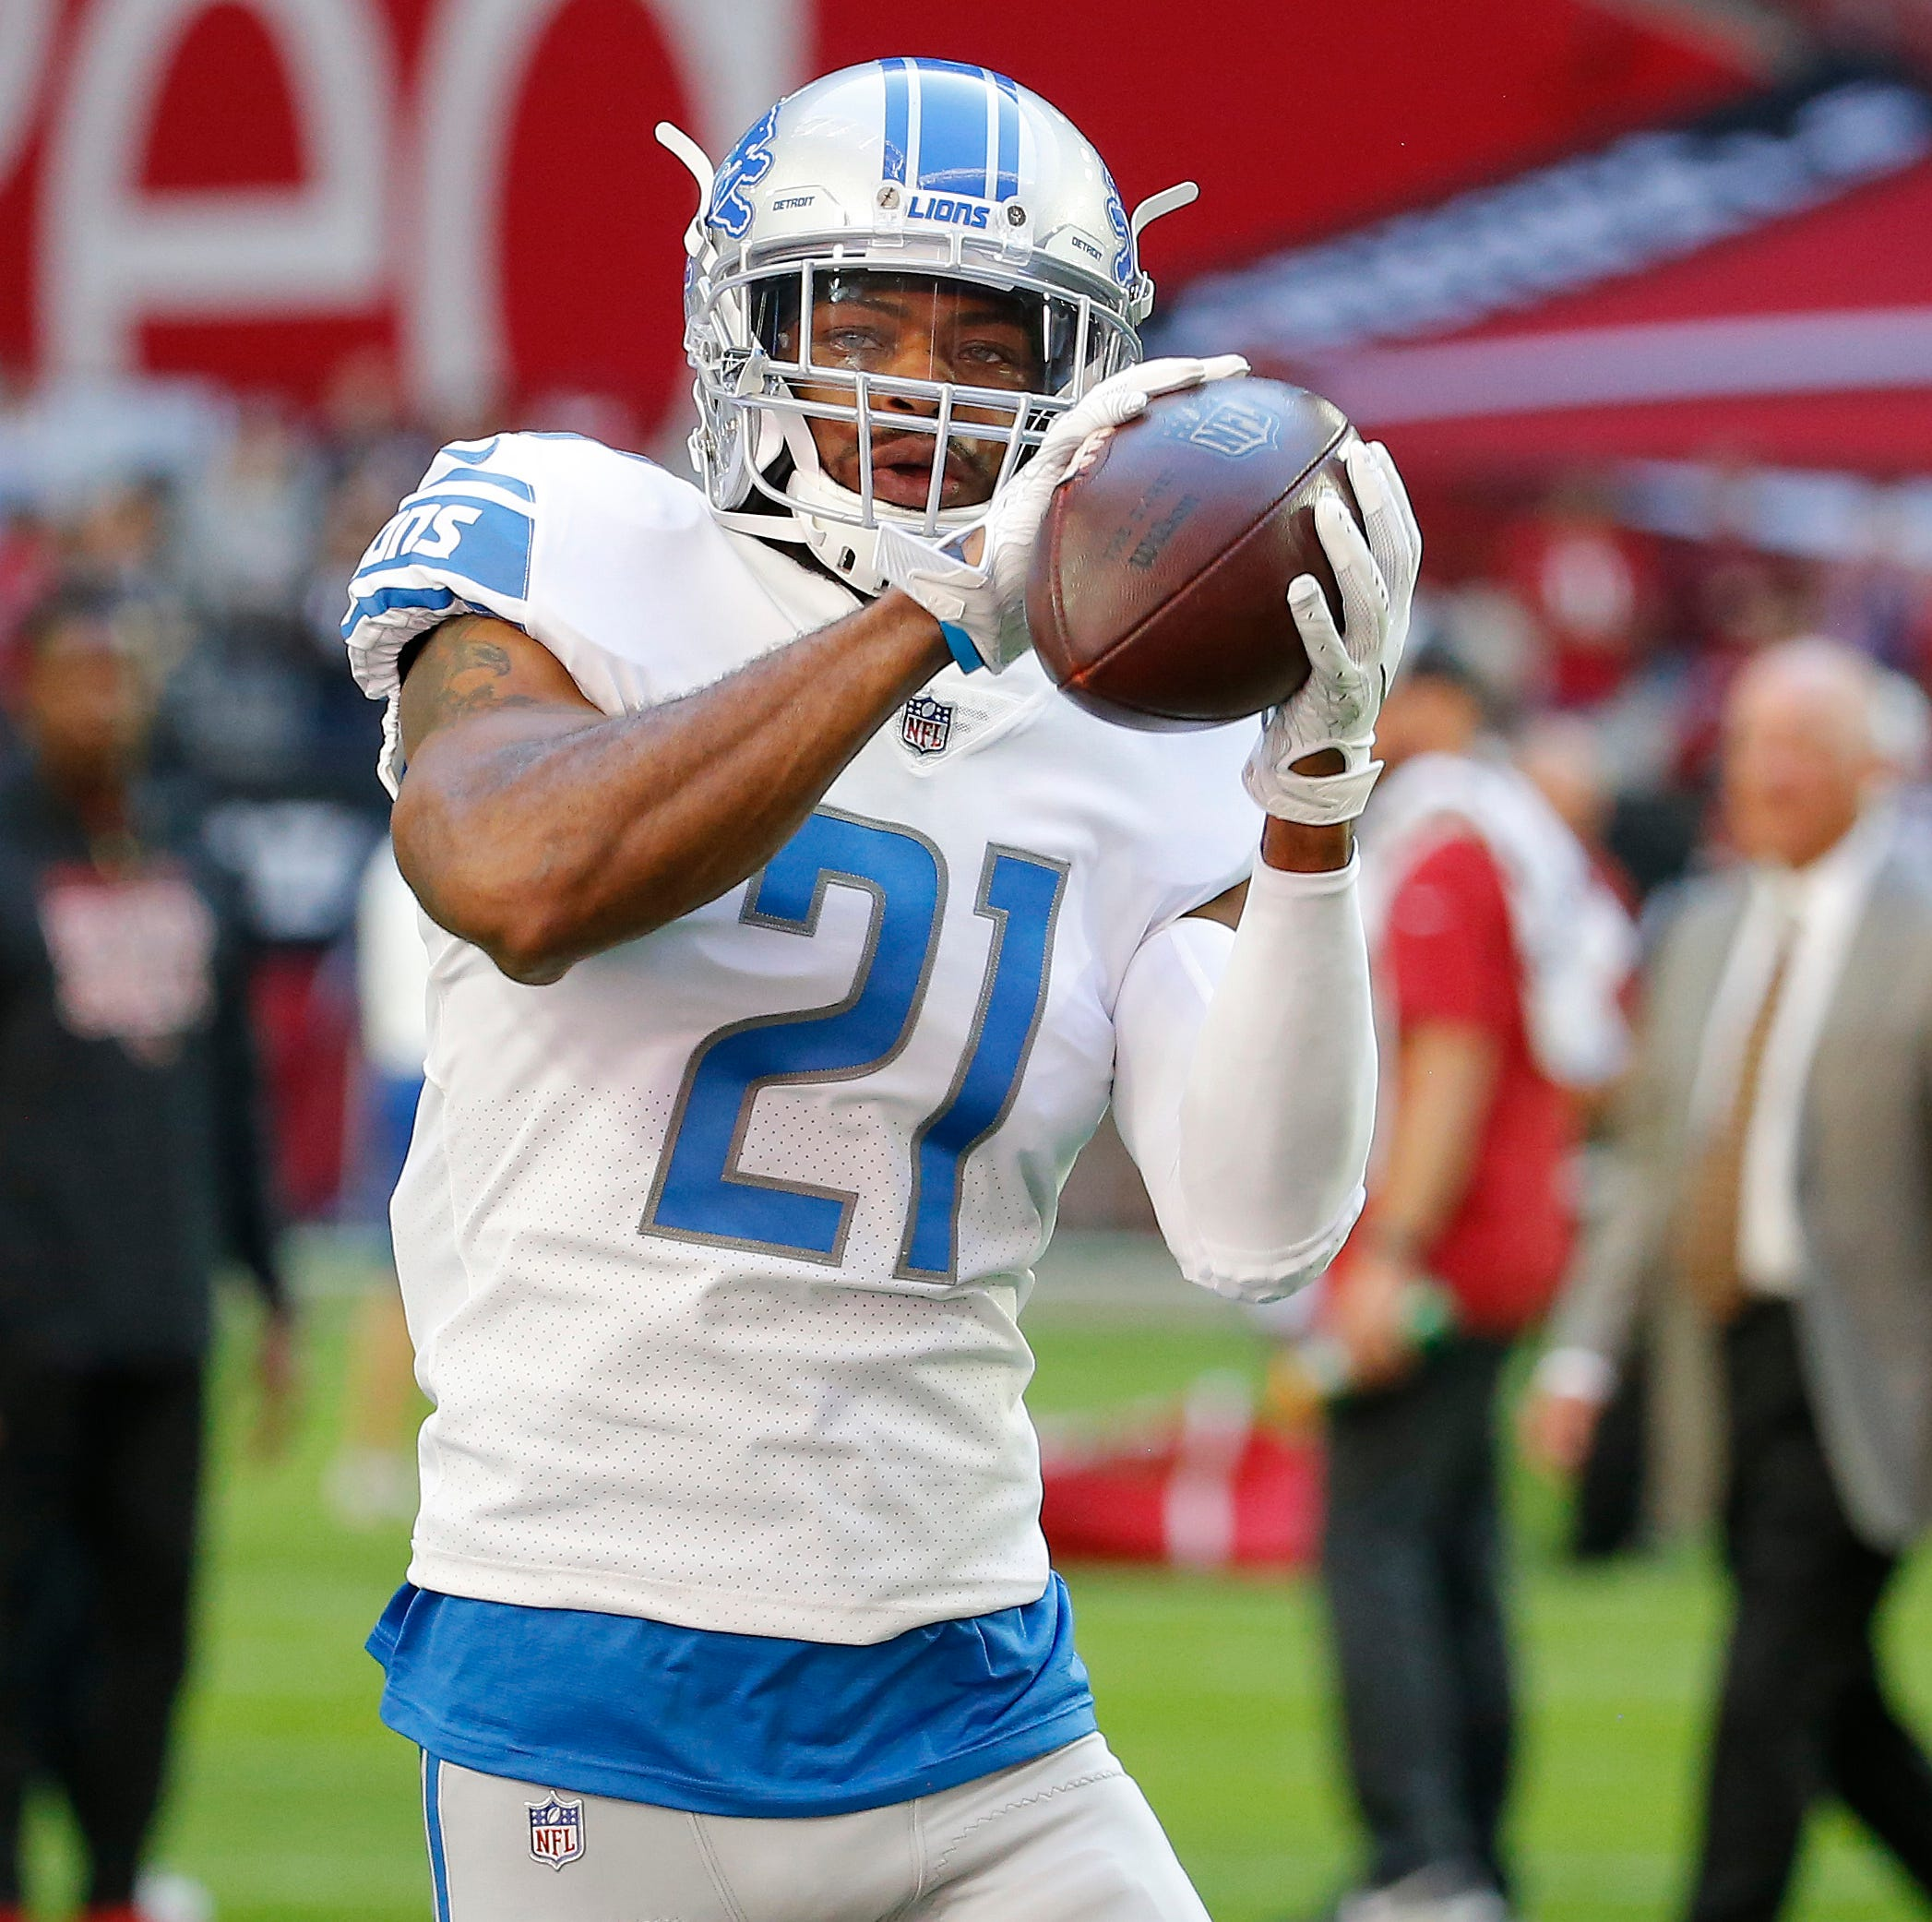 Lions re-sign cornerback Marcus Cooper to one-year contract